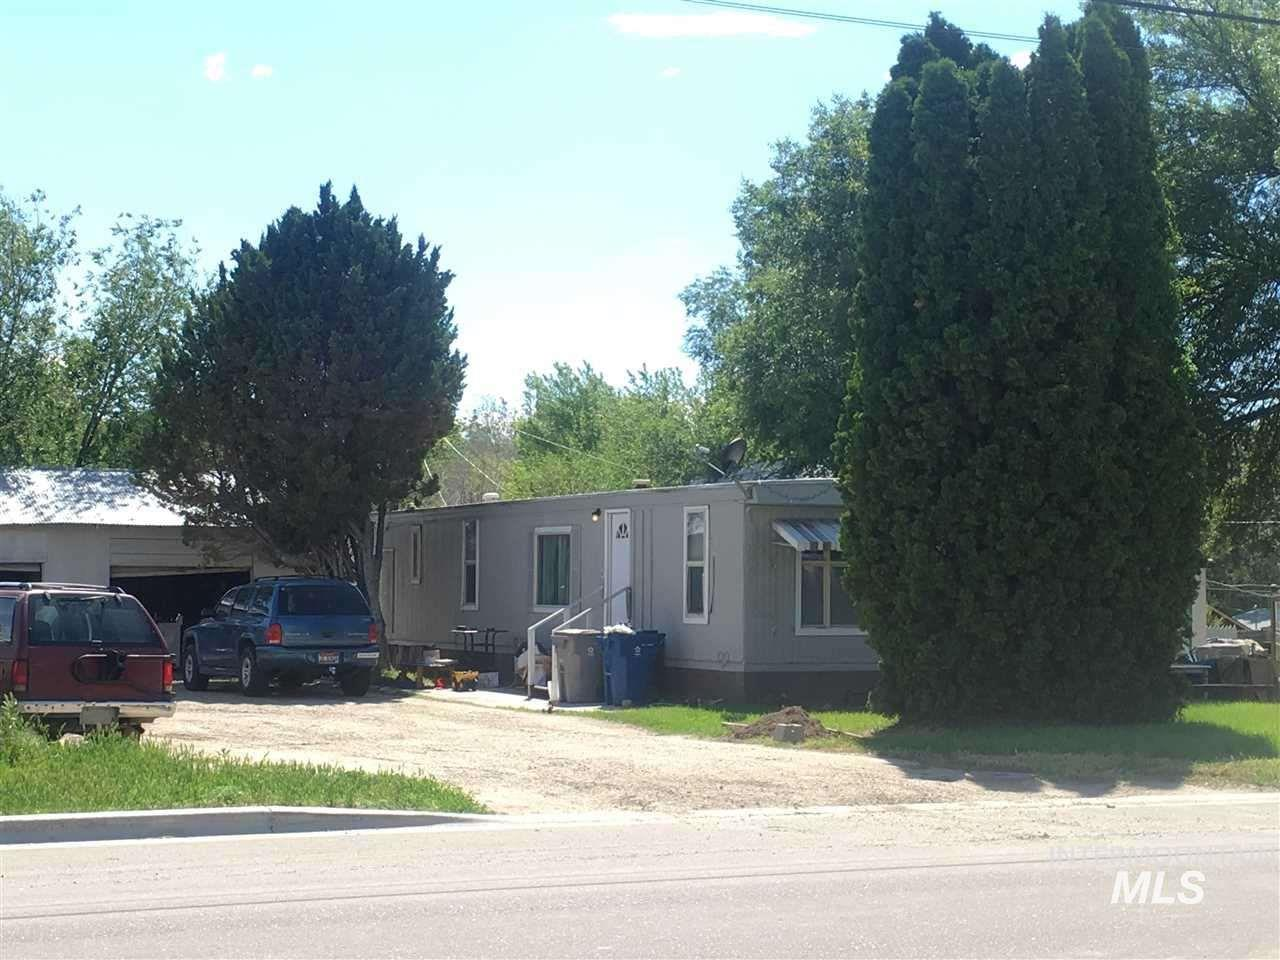 151 6th St N #1/#2, Nampa, Idaho 83687, 3 Bedrooms, 2 Bathrooms, Residential Income For Sale, Price $199,000, 98746957